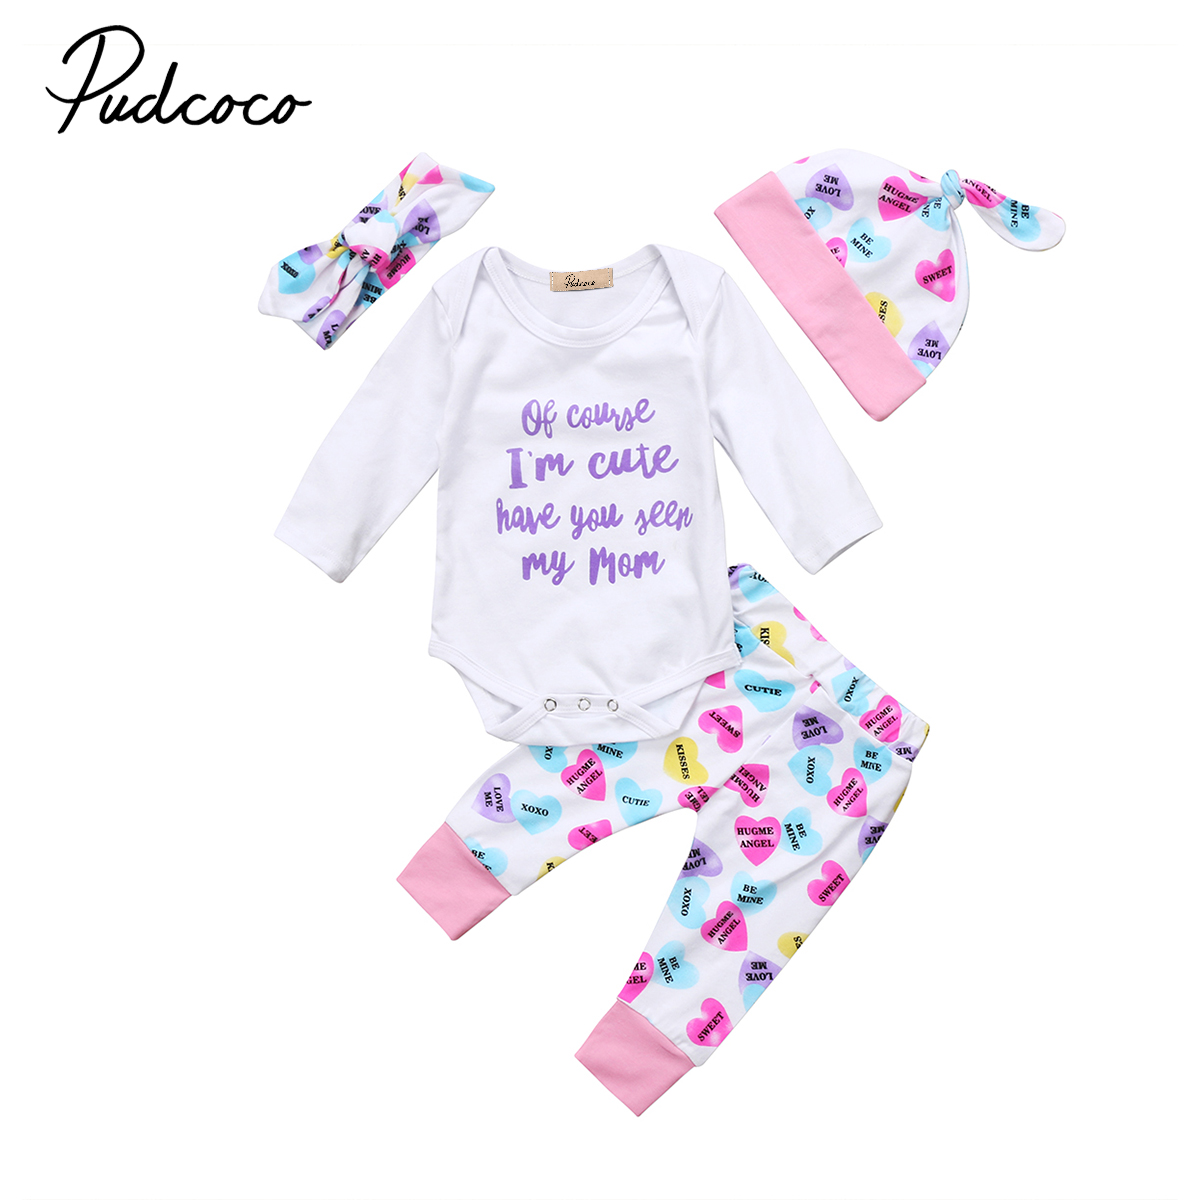 Cute 4Style Newborn Infant Baby Girls Winter Clothes Letter Print Floral Romper Long Pants Leggings Outfits Cotton Toddler